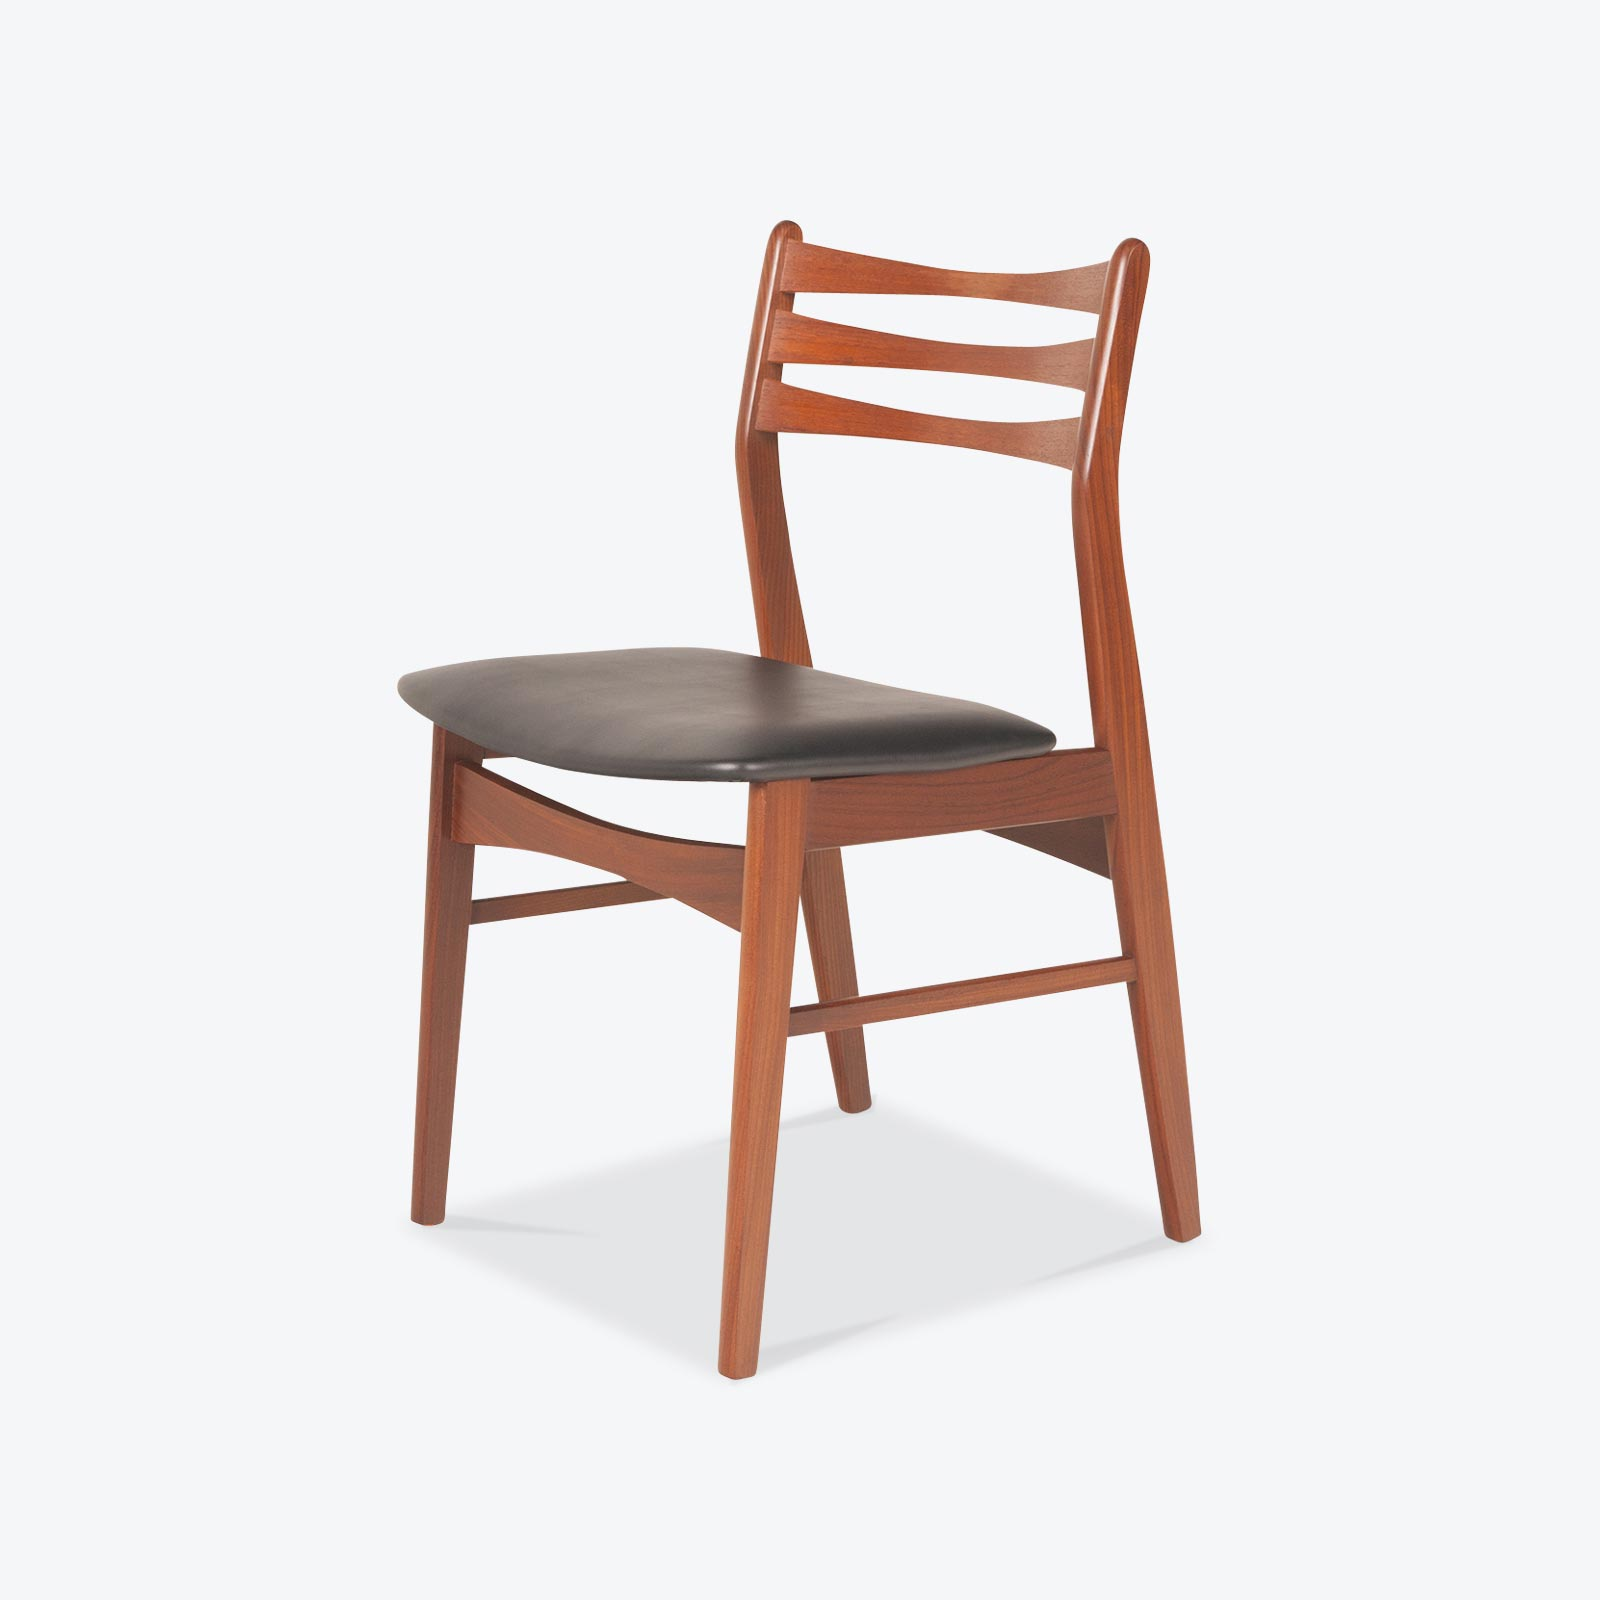 Set 6 Ladder Back Dining Chairs In Teak